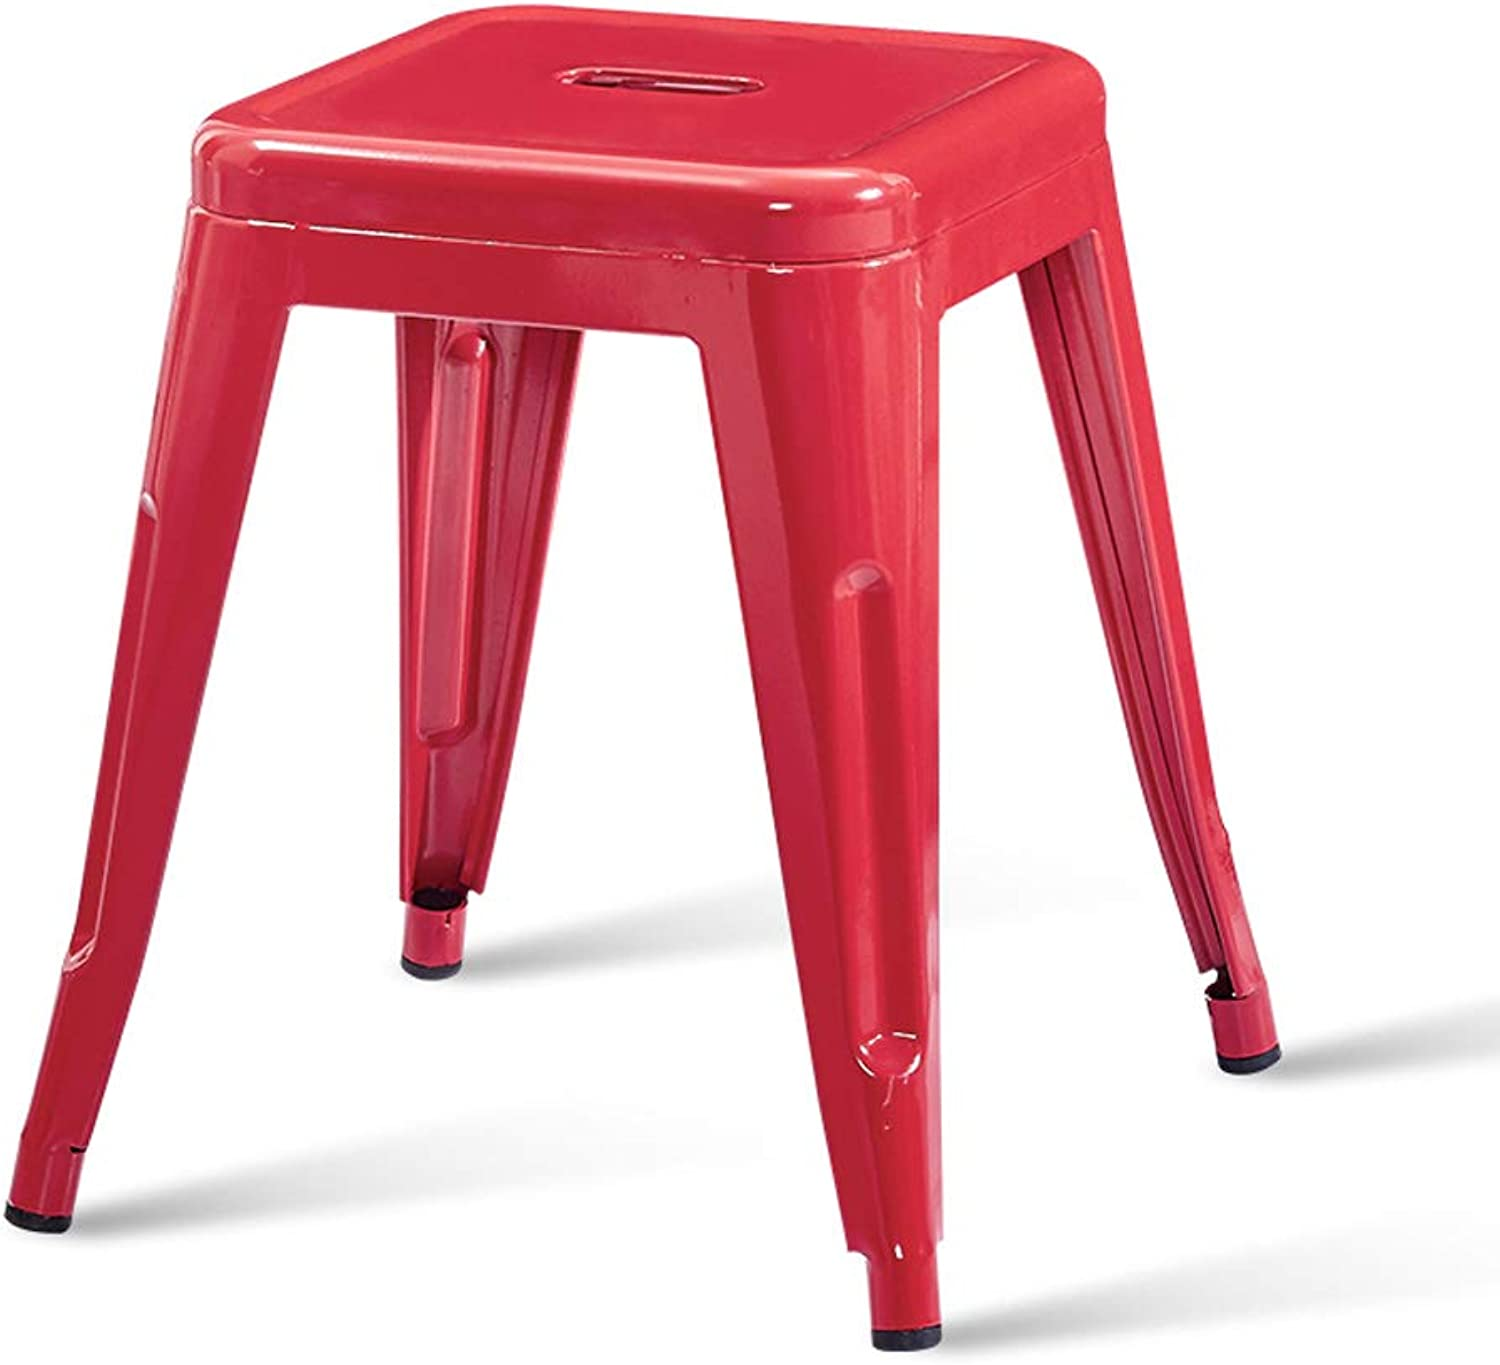 CJH Modern Minimalist Iron Stool Fashion Creative Stool Table Stool Home Living Small Bench Red Adult Stool